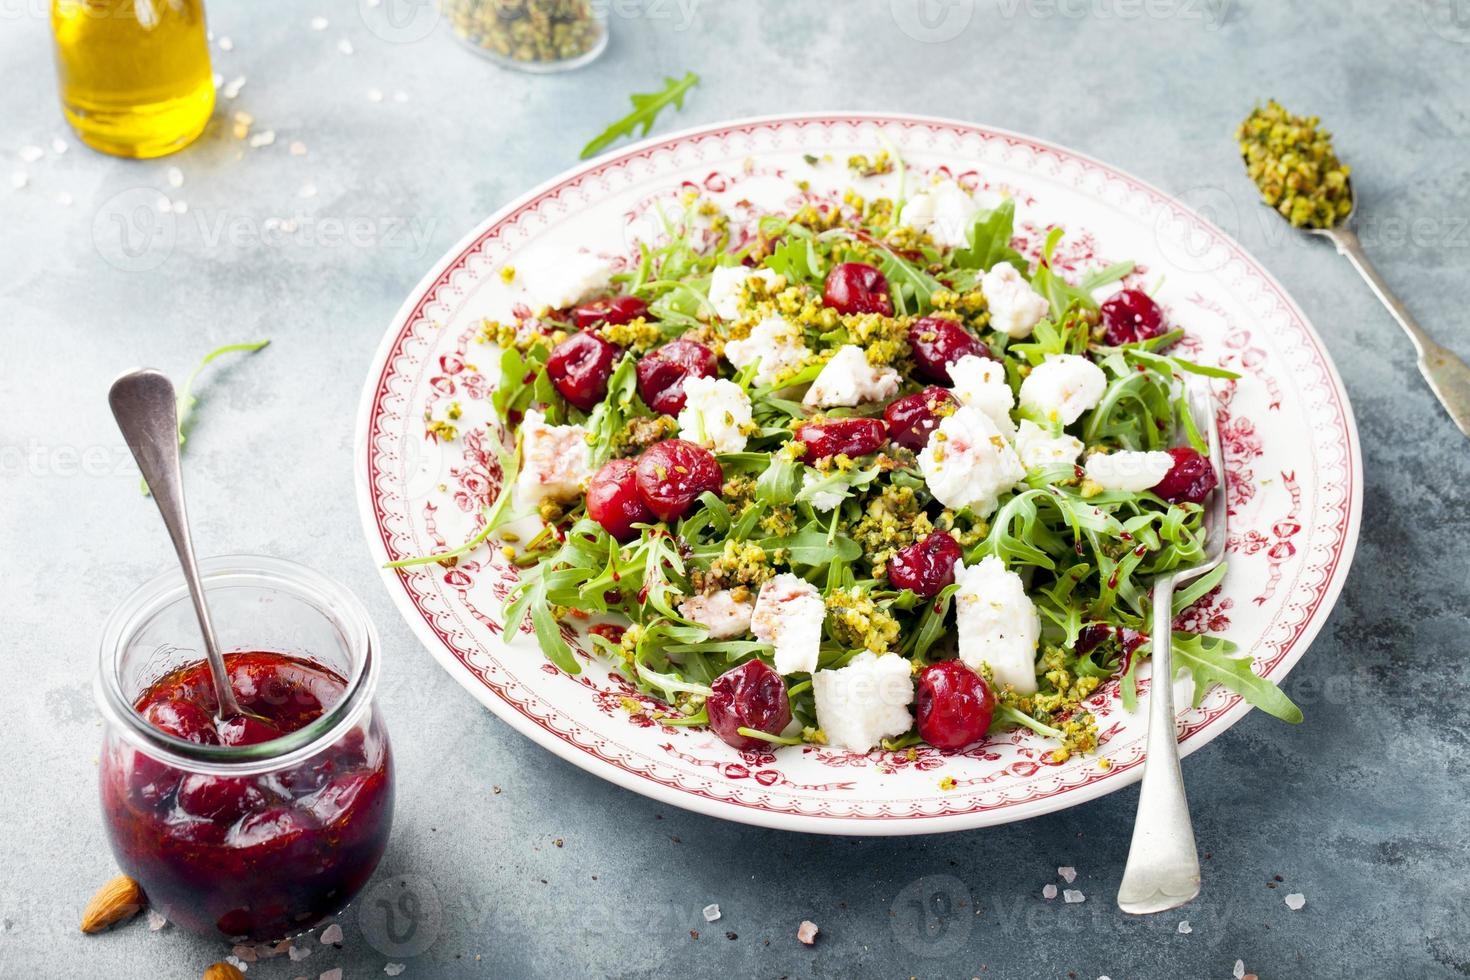 Salad with arugula, cherries and goat cheese. photo